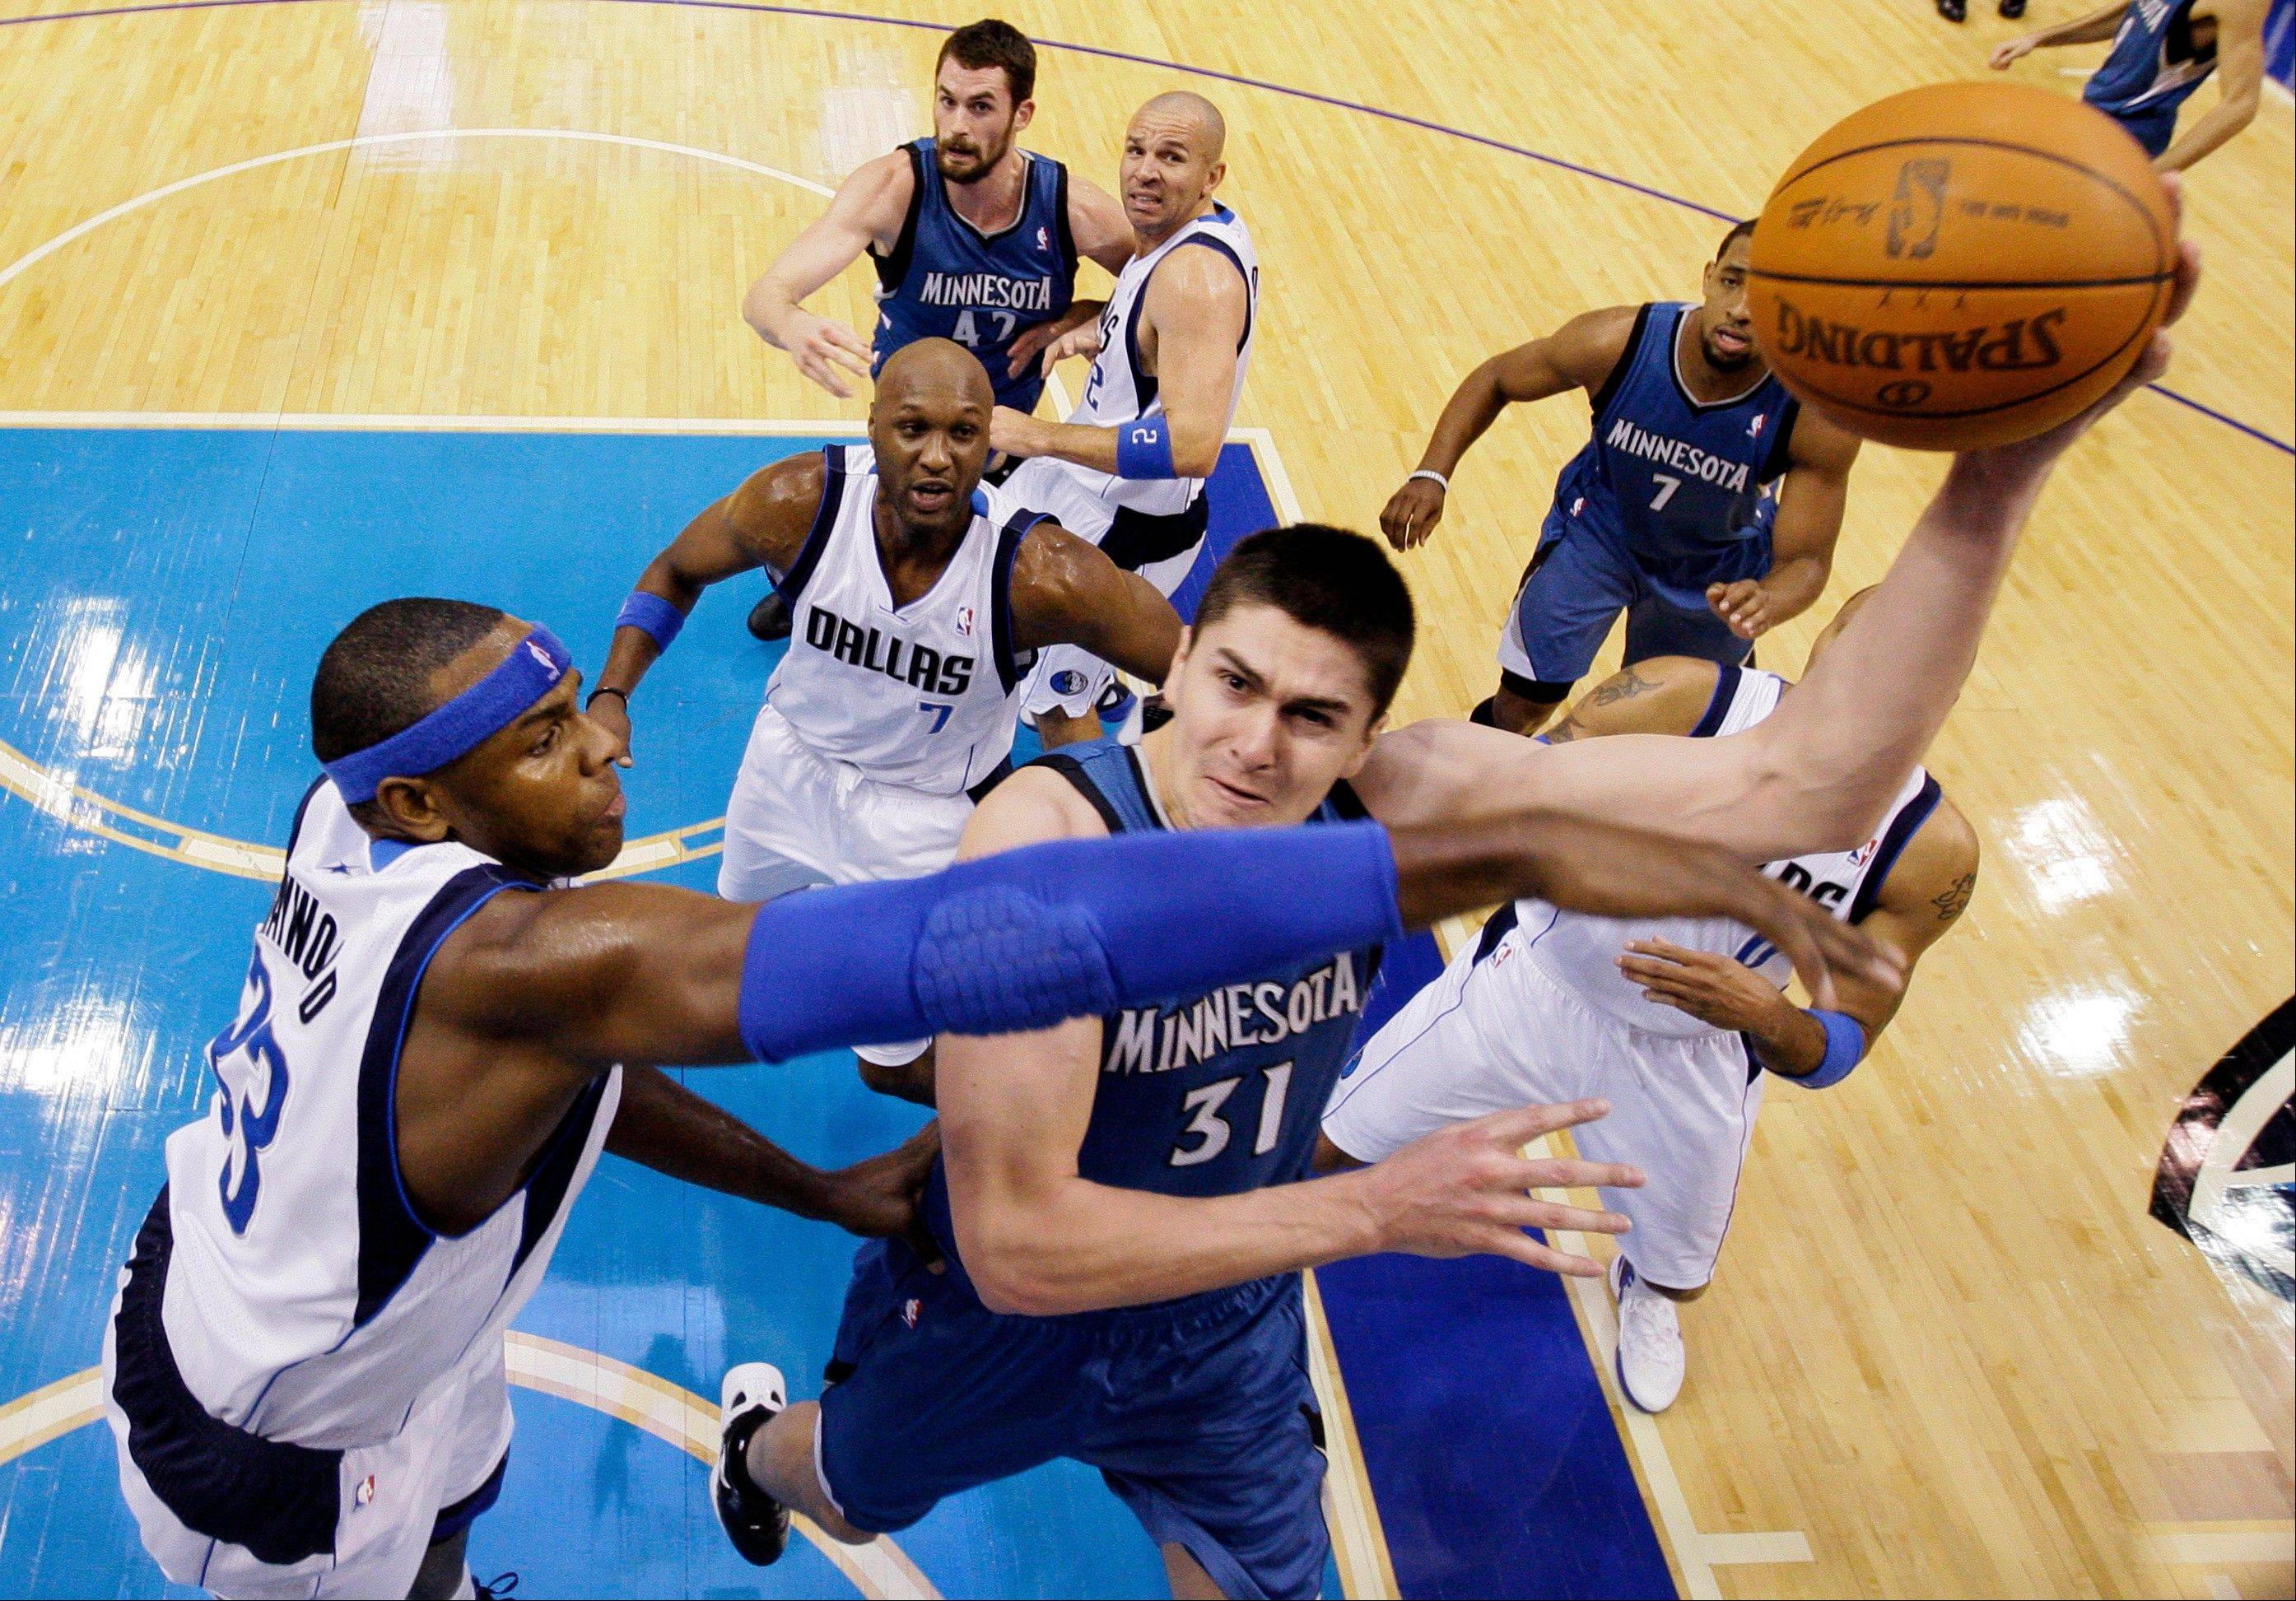 Minnesota wins 105-90 after Mavs get title rings